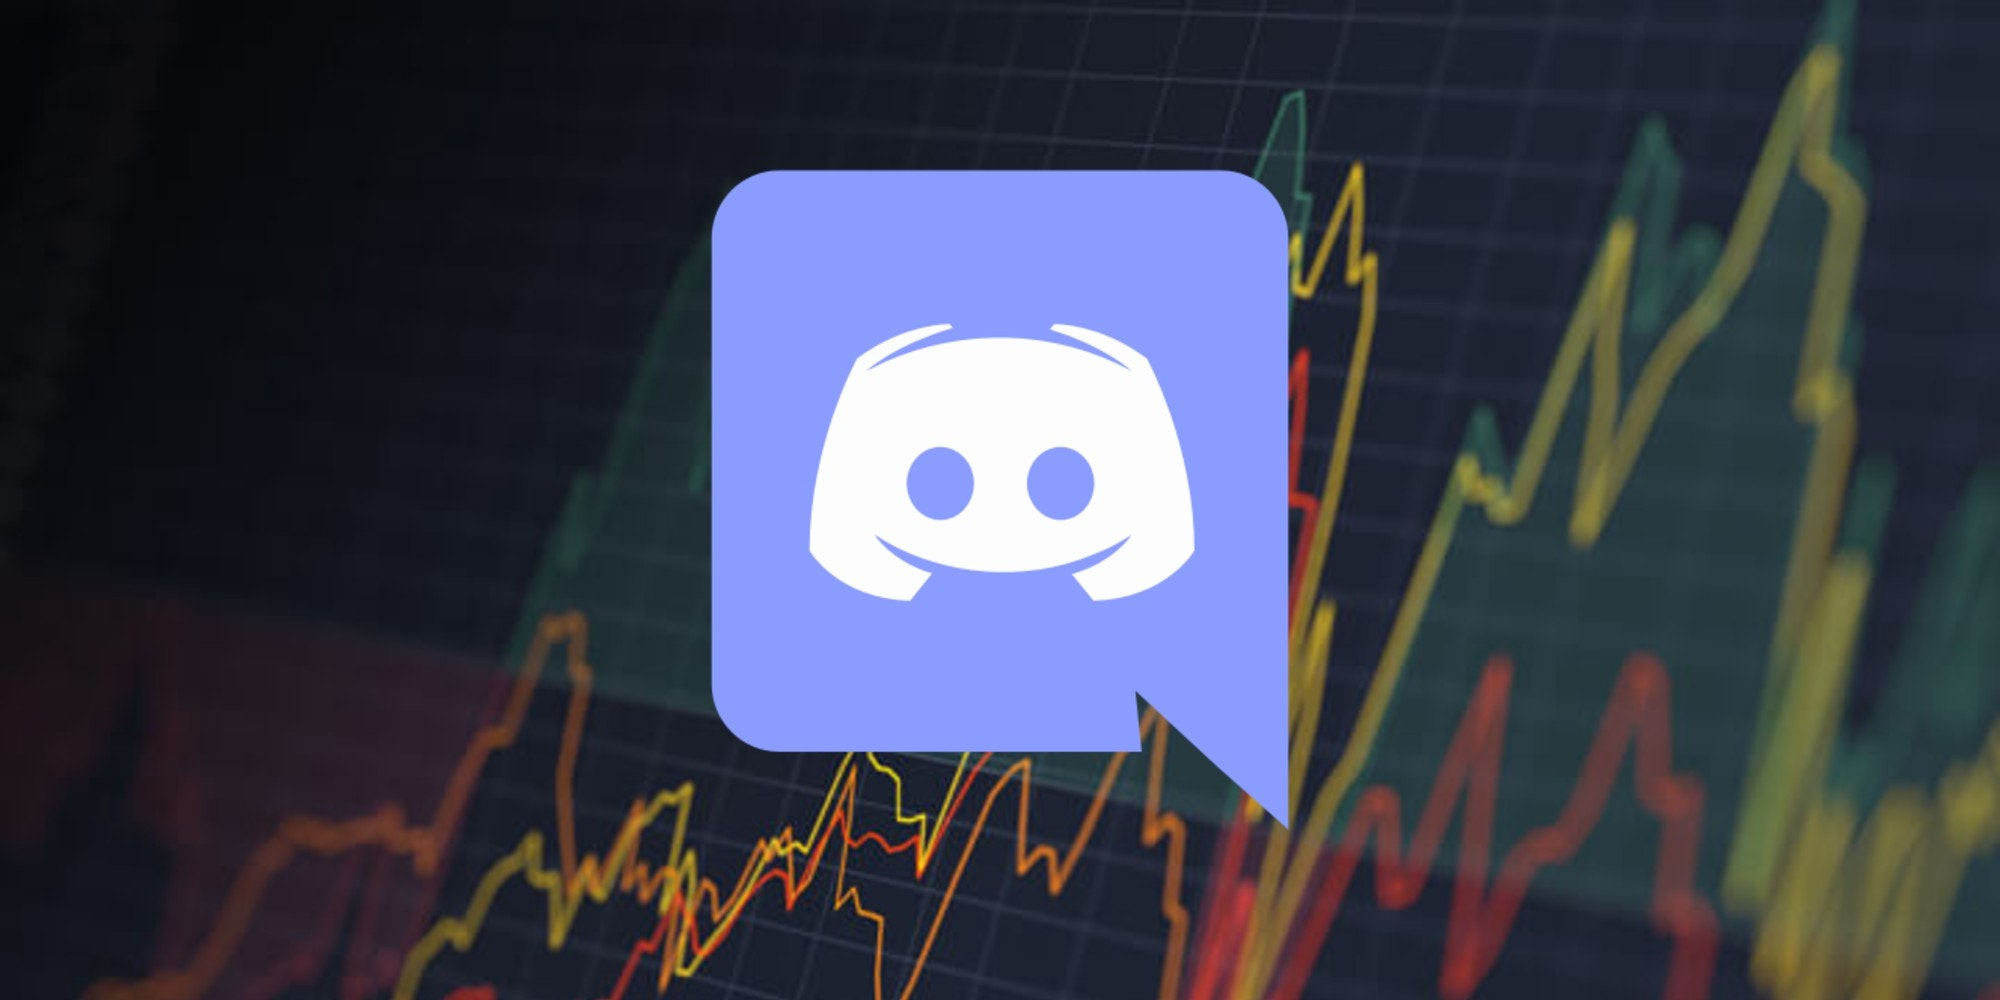 The Discord logo over a stock chart